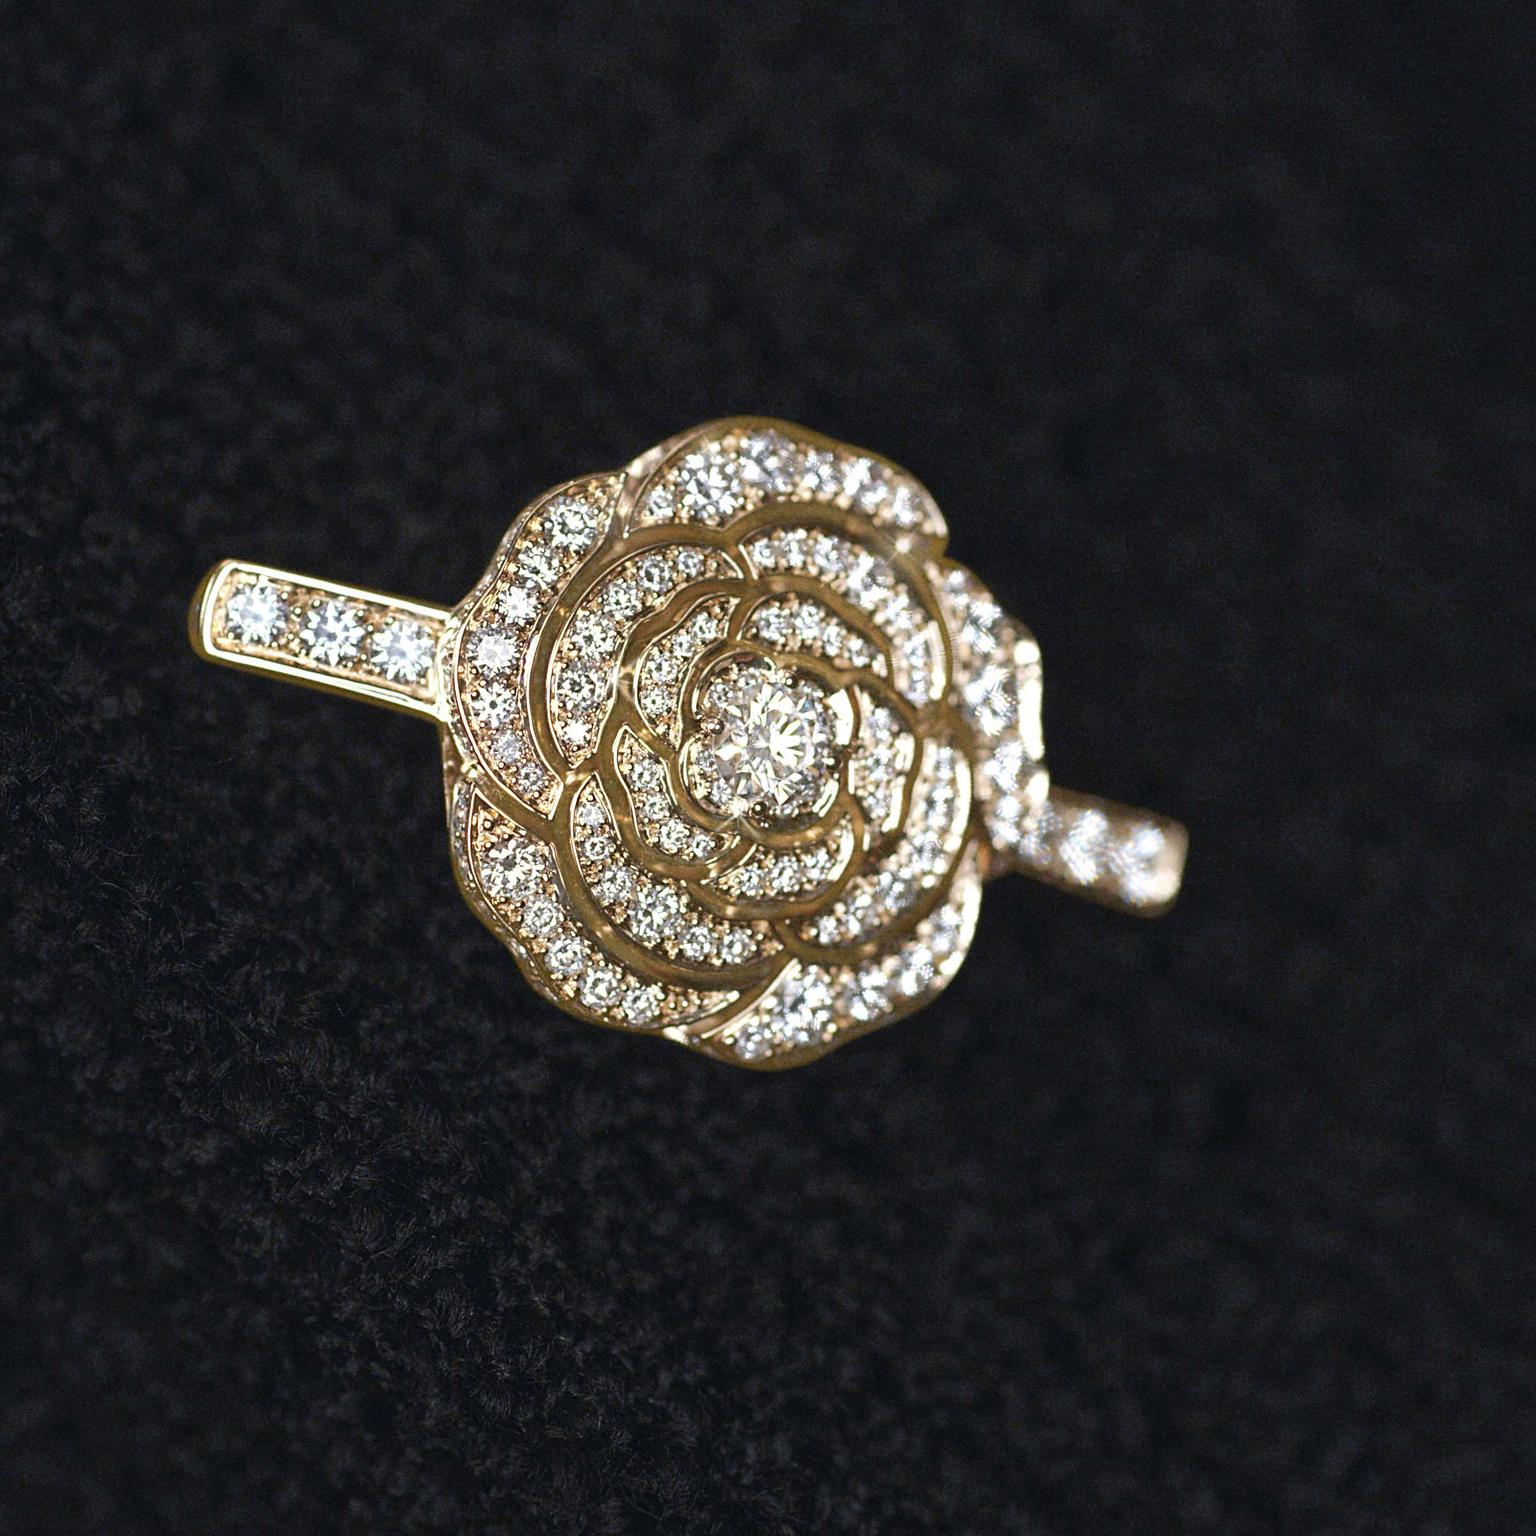 Chanel 1.5 Rouge Tentation diamond rose gold brooch small